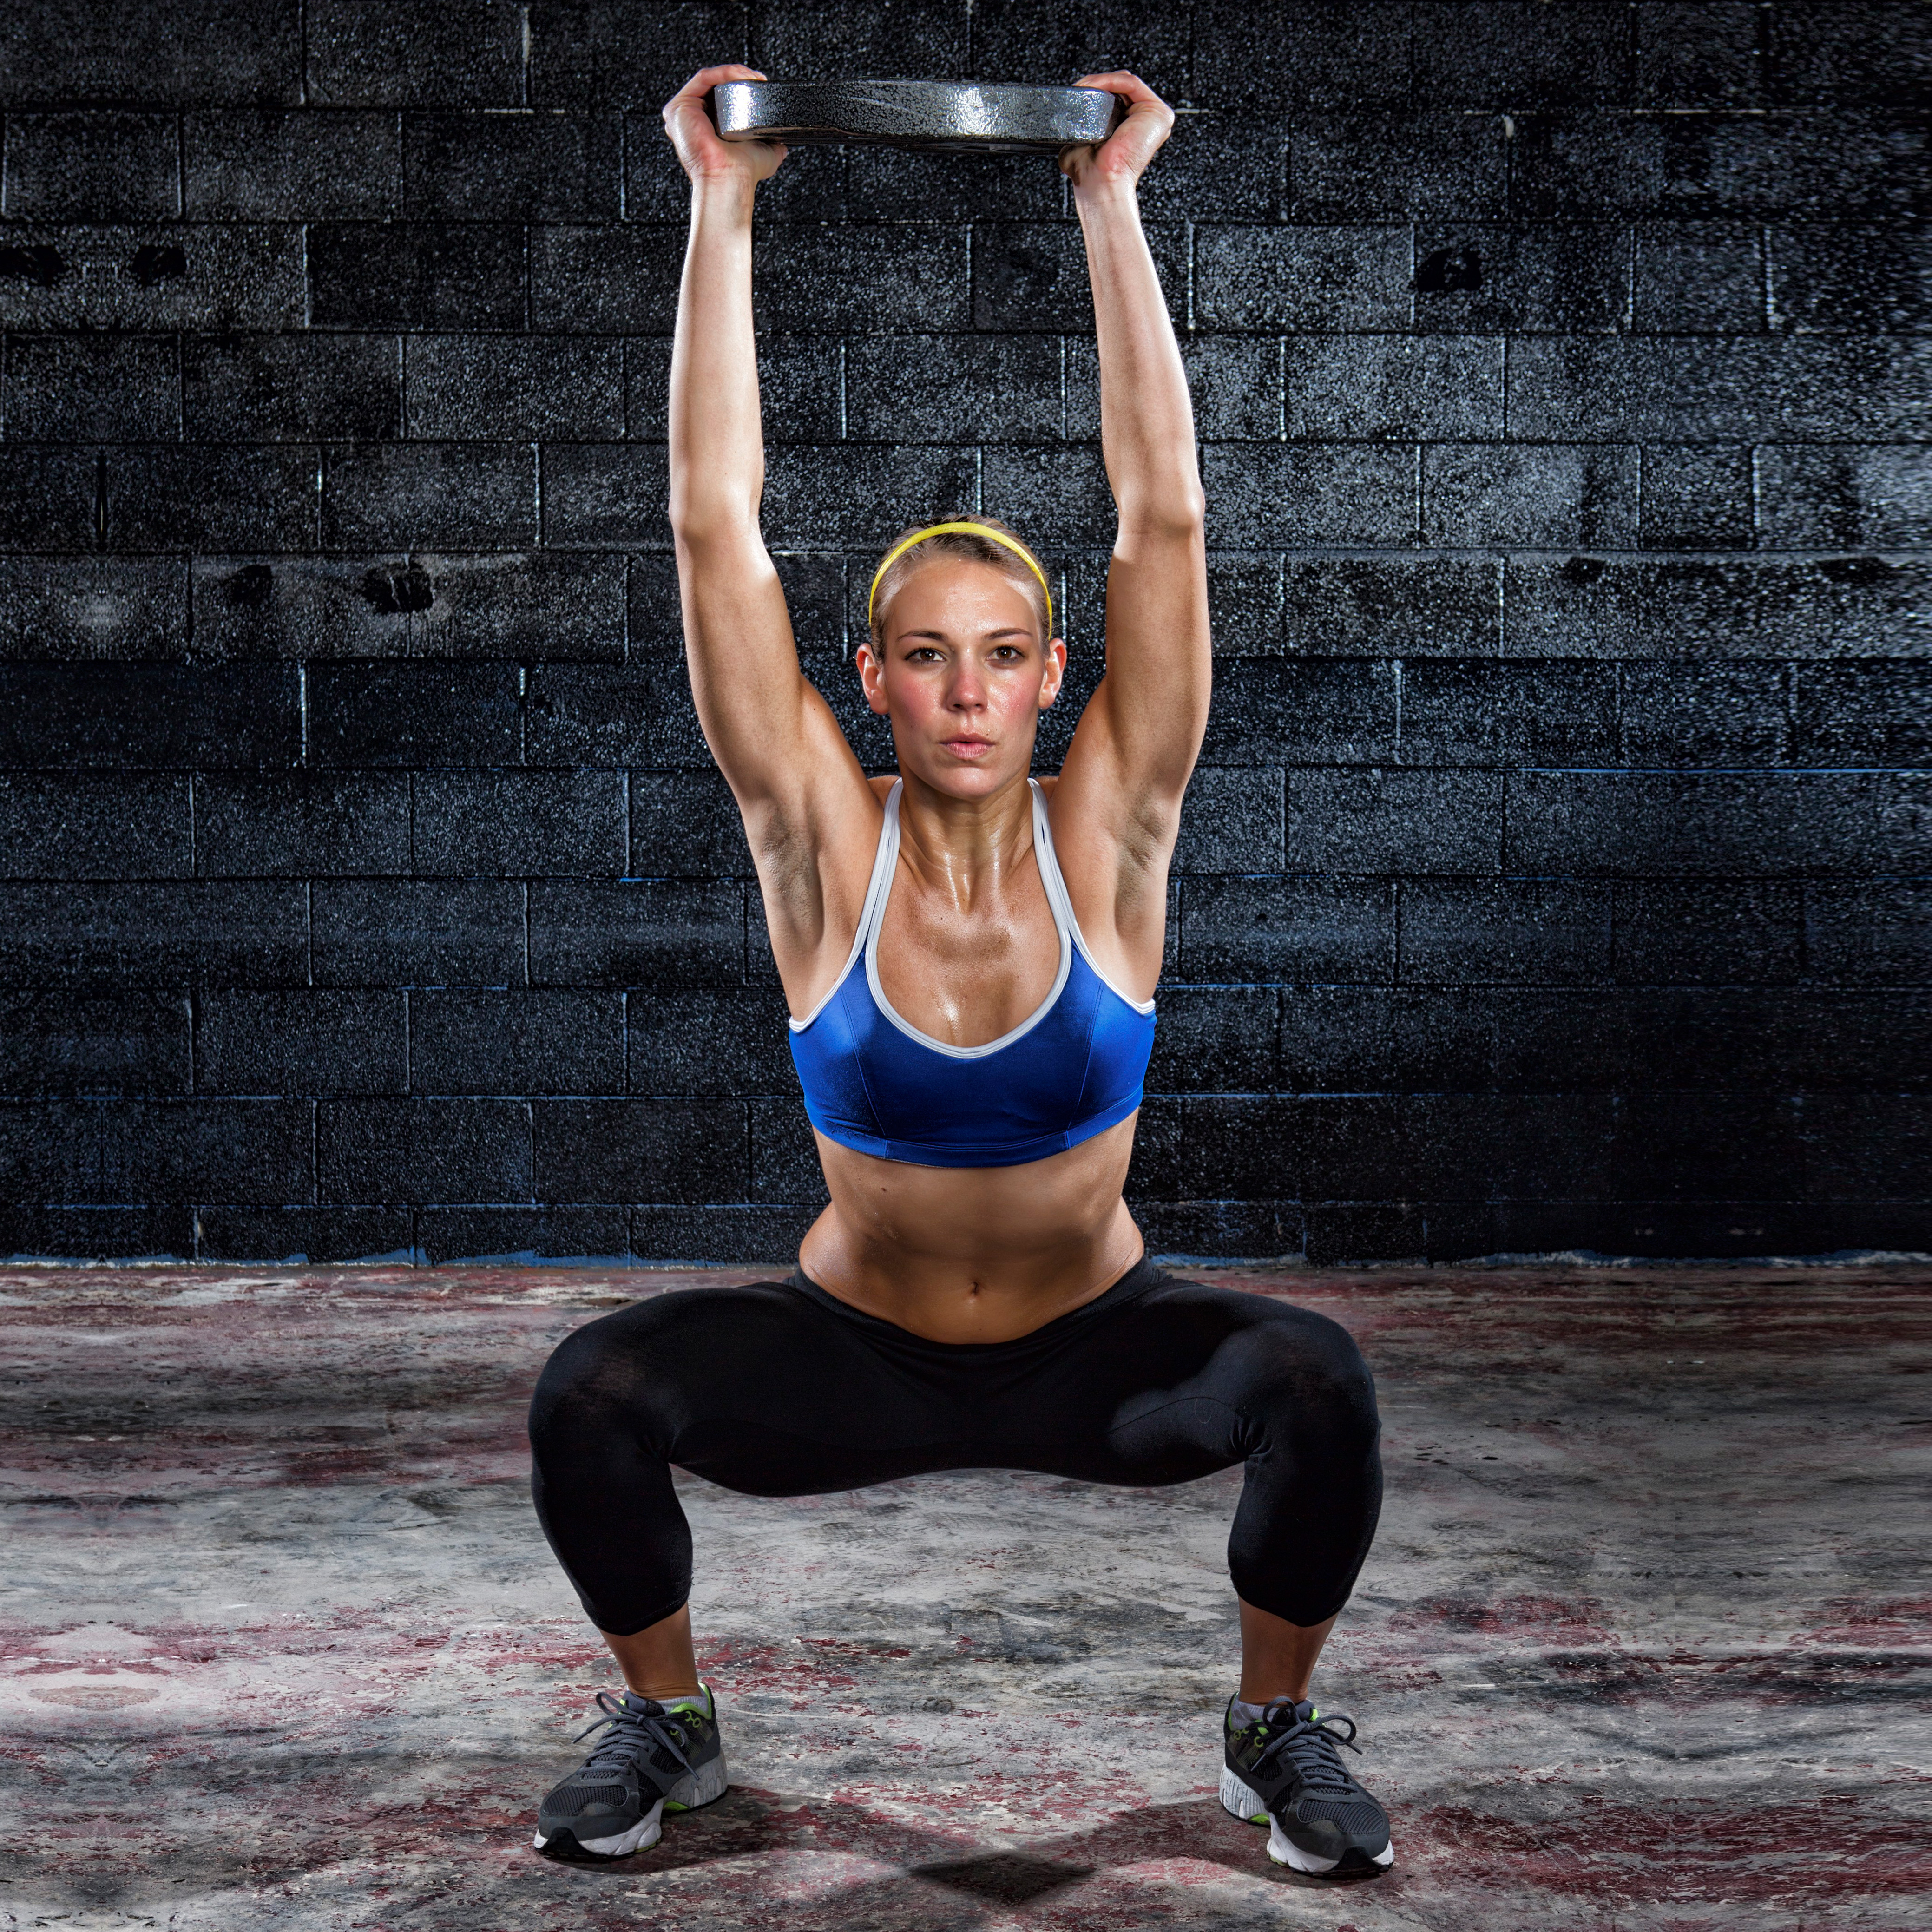 7 Weight Plate Strength Exercises That Work Wonders